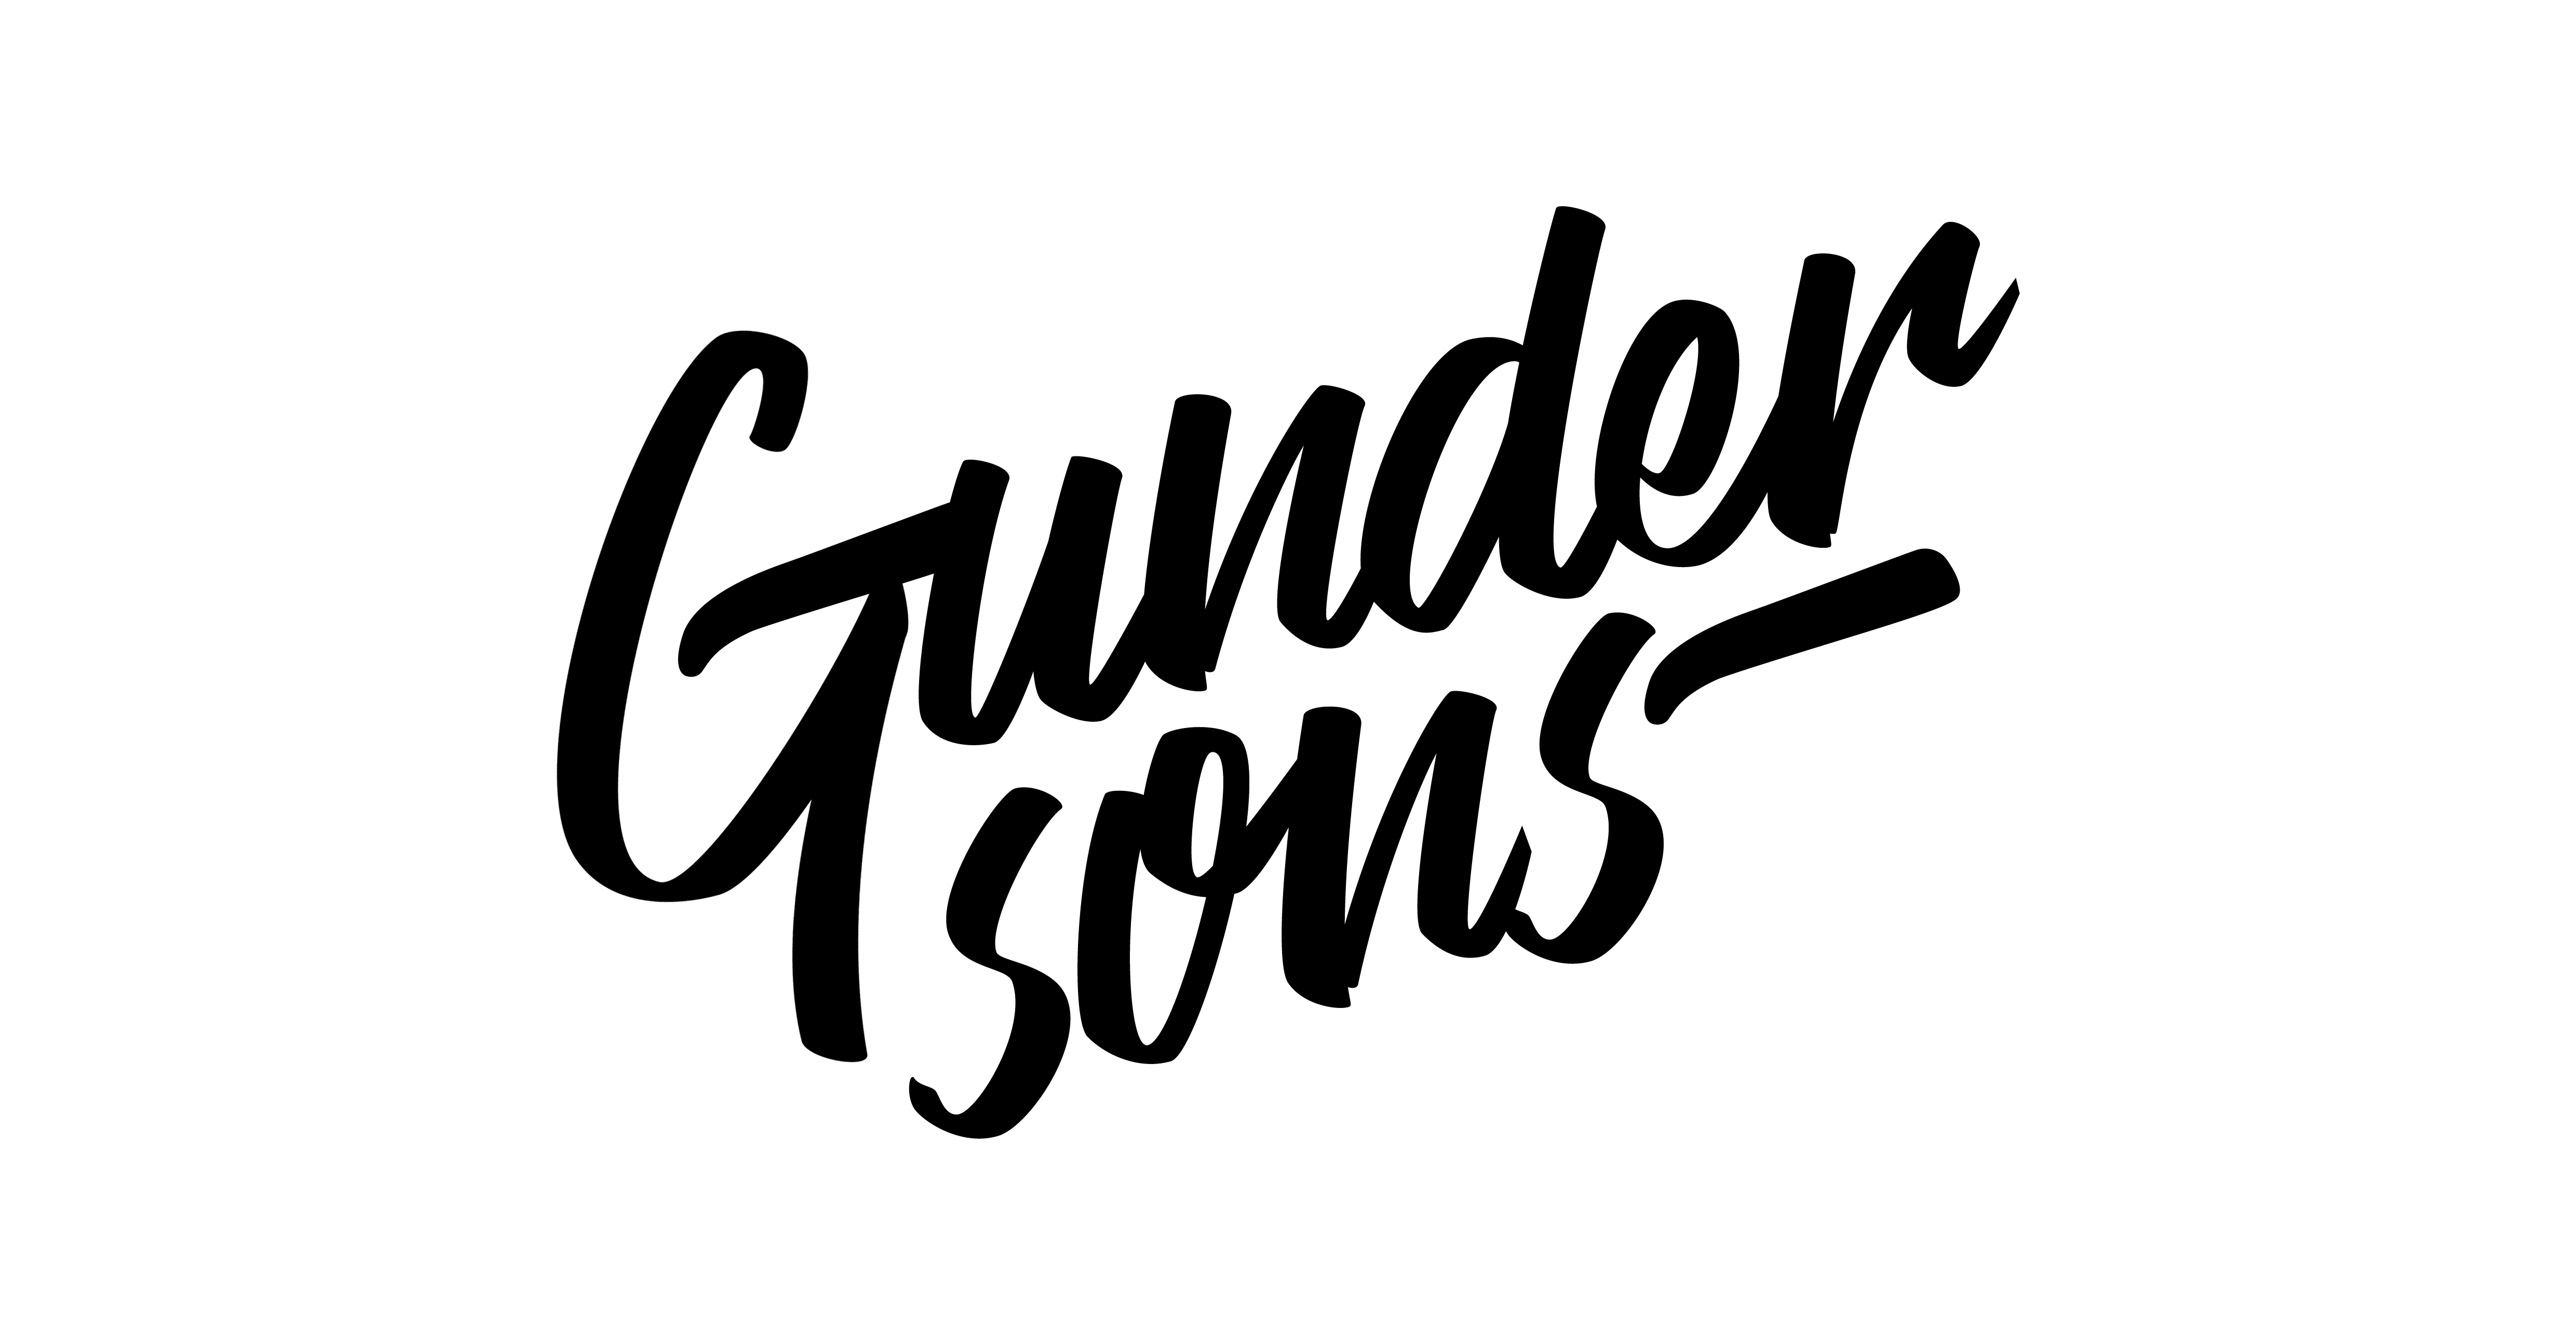 GUNDERSONS™ - Illustration, graphic design & branding